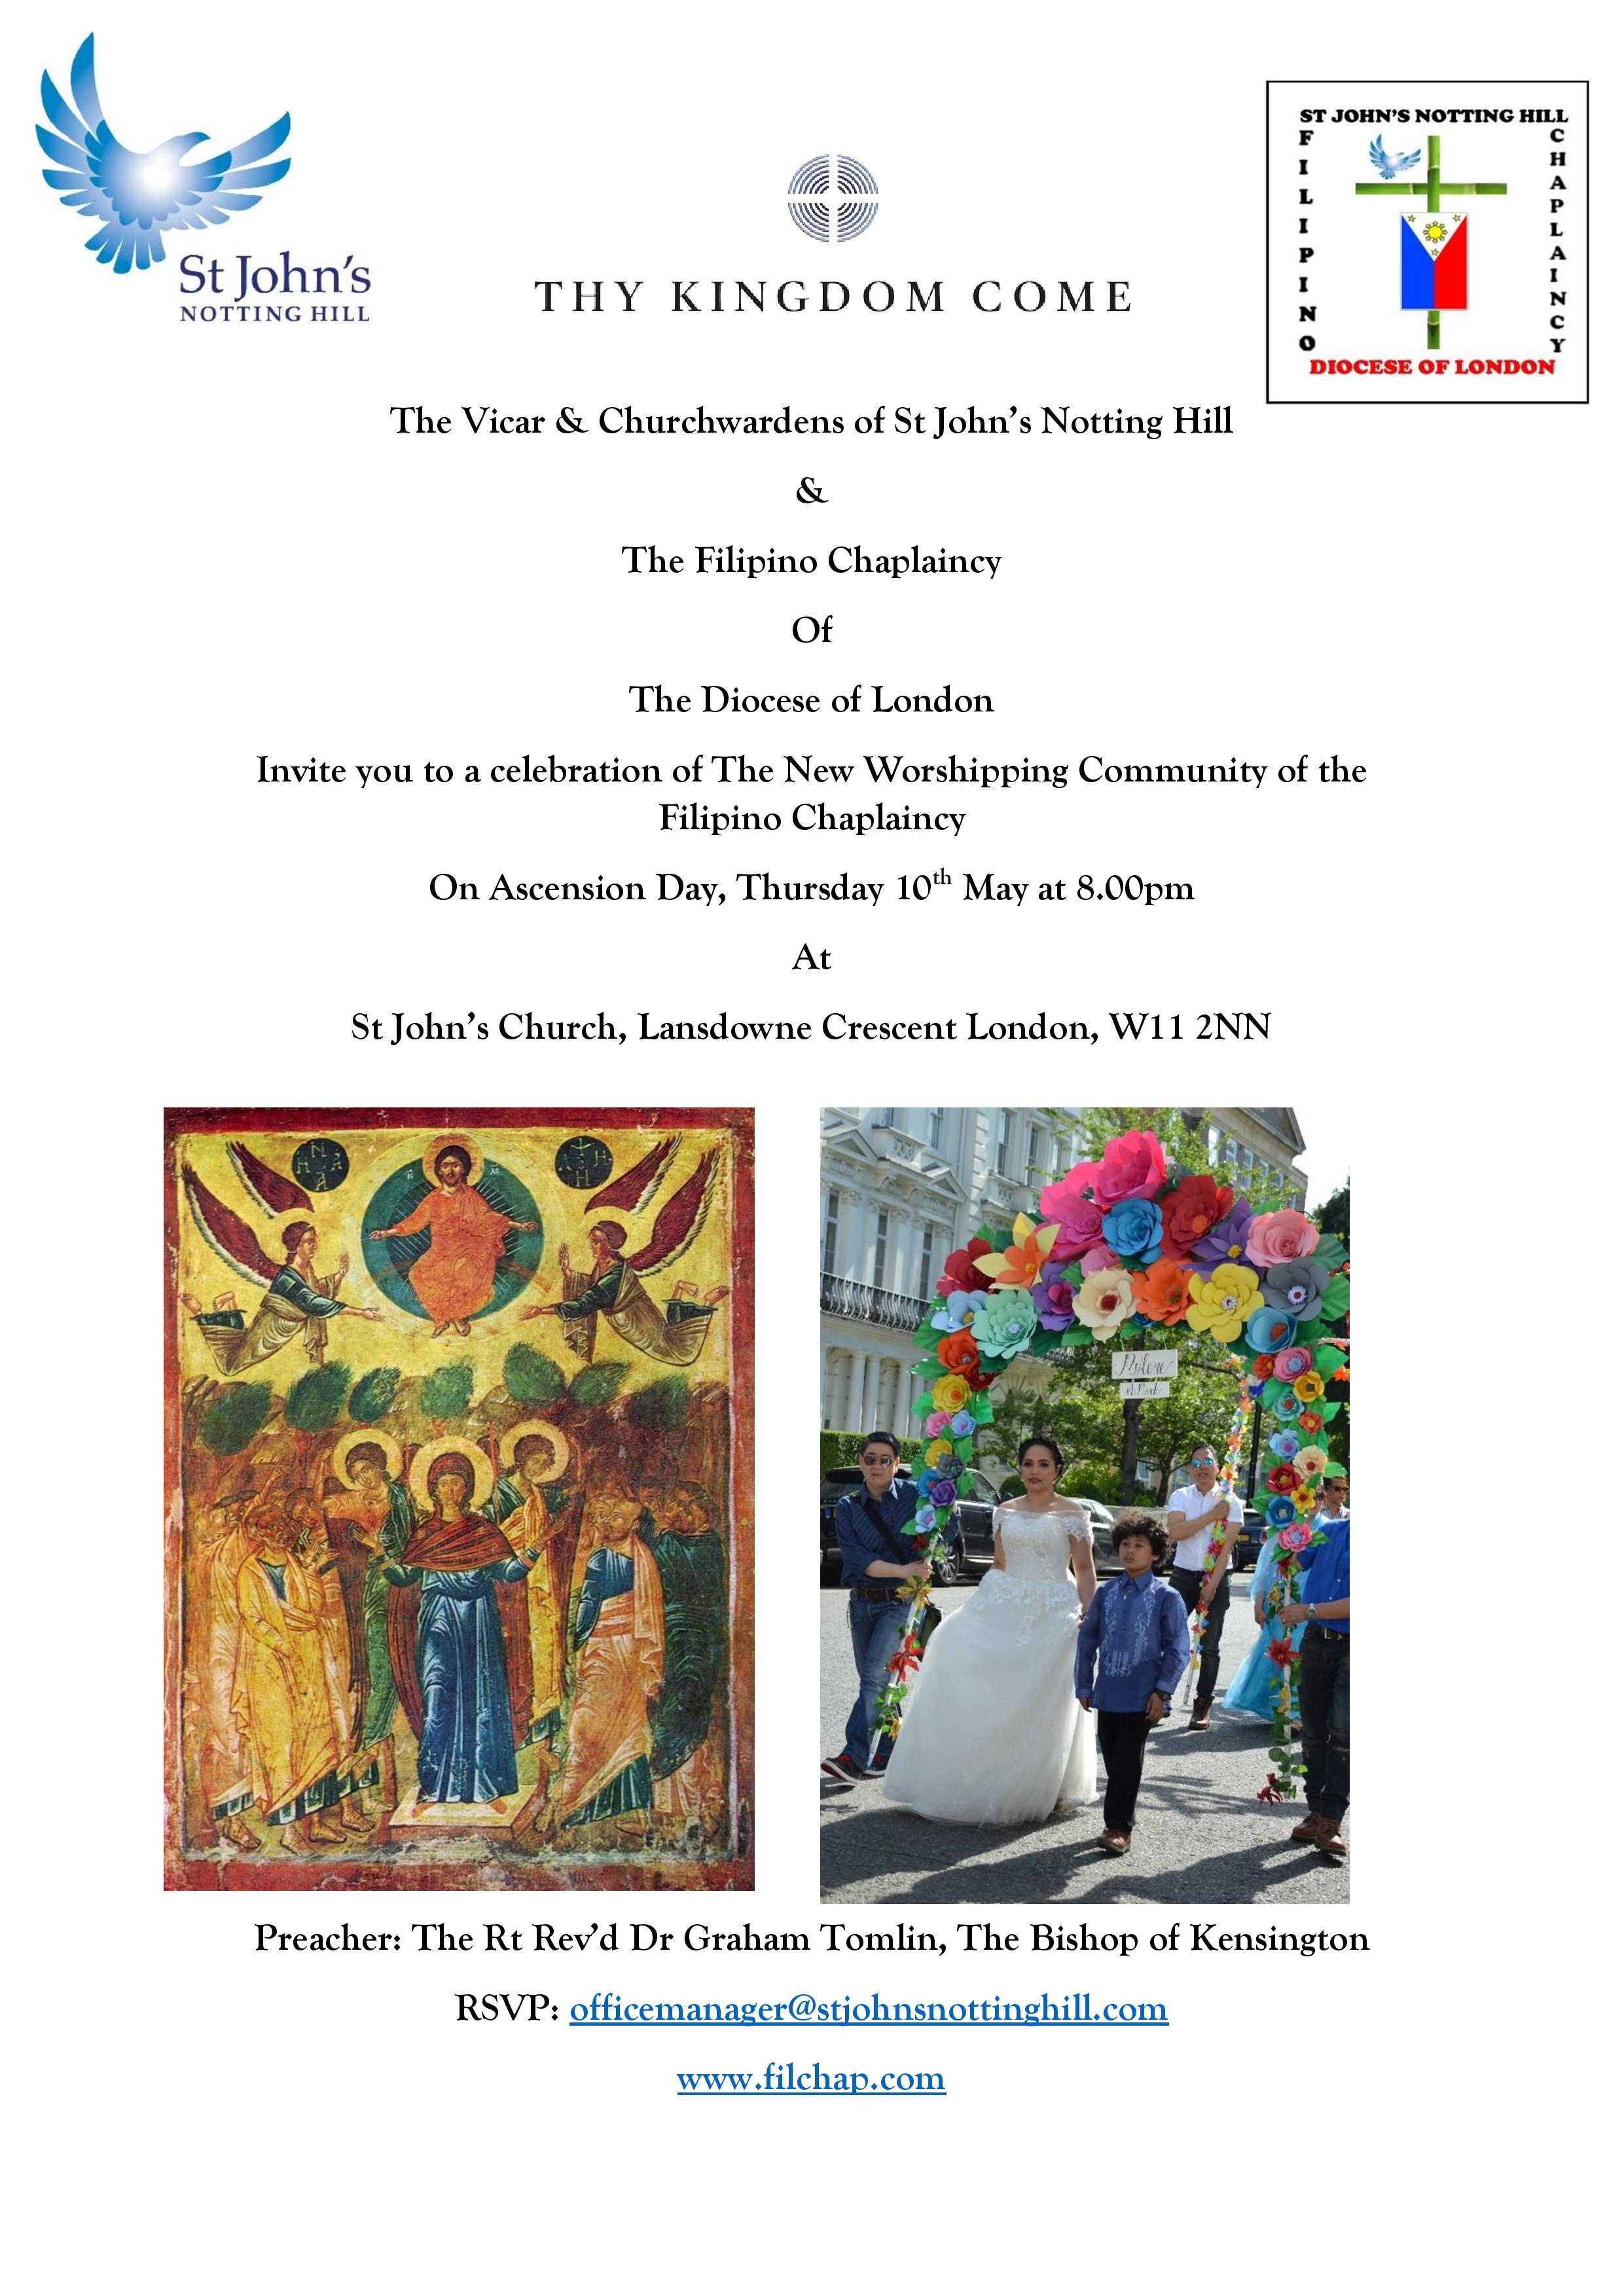 Ascension day invitations 2018-page-001.jpg